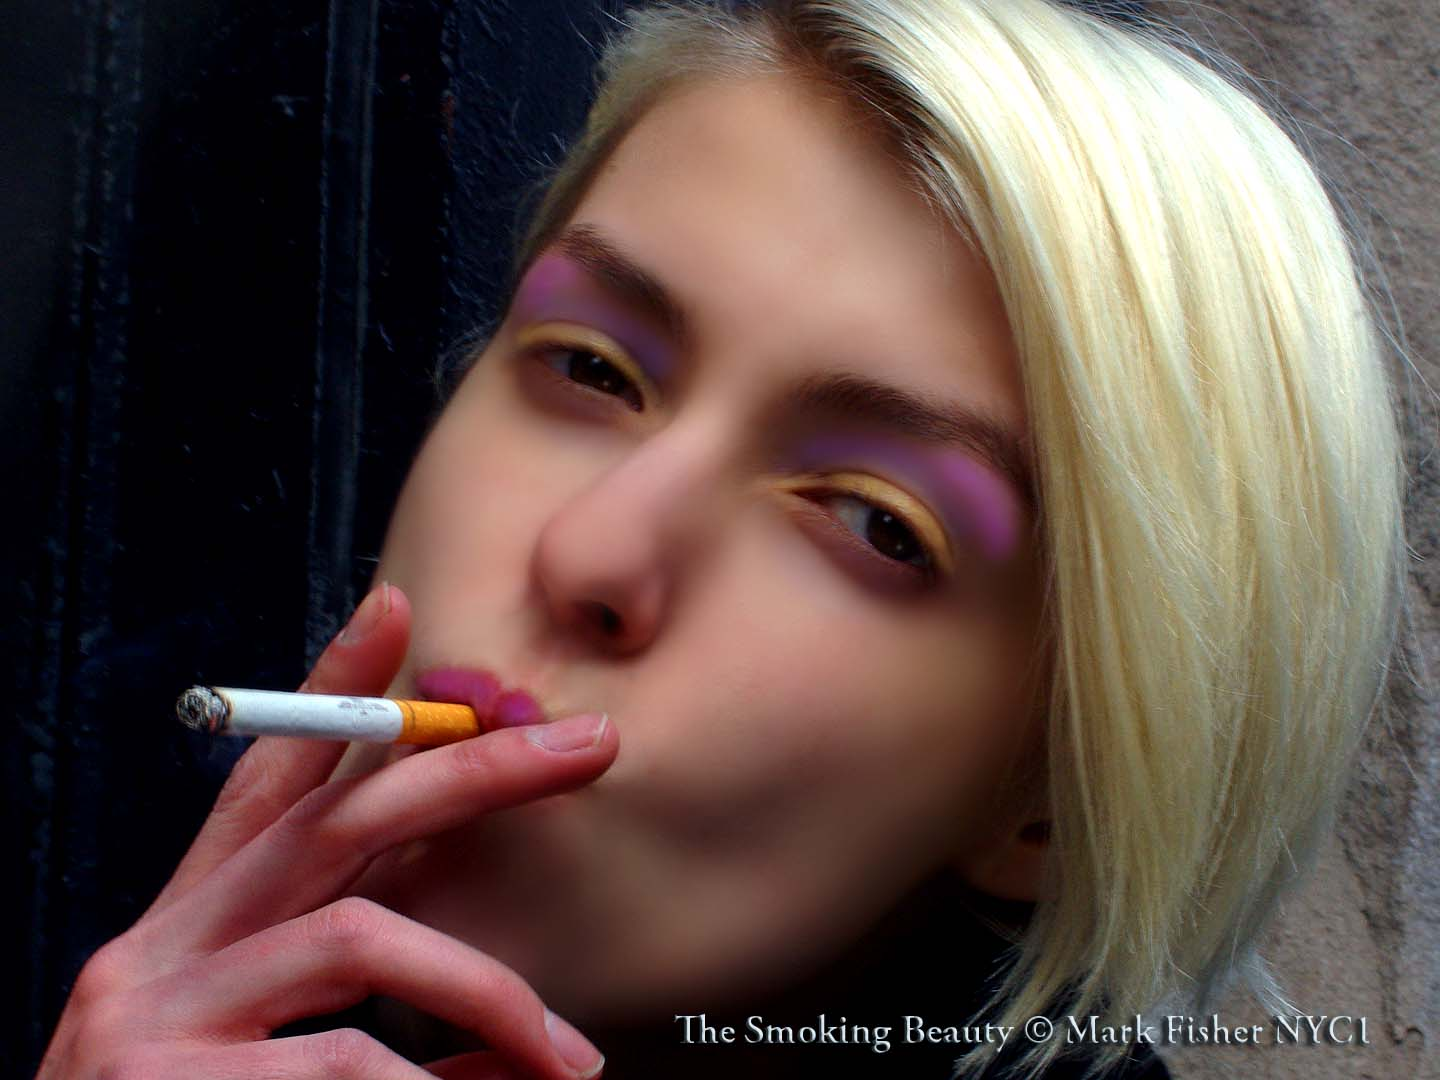 Photo of the in Belgium born Taurus, Stella Maxwell smoking in 2018 at age 26